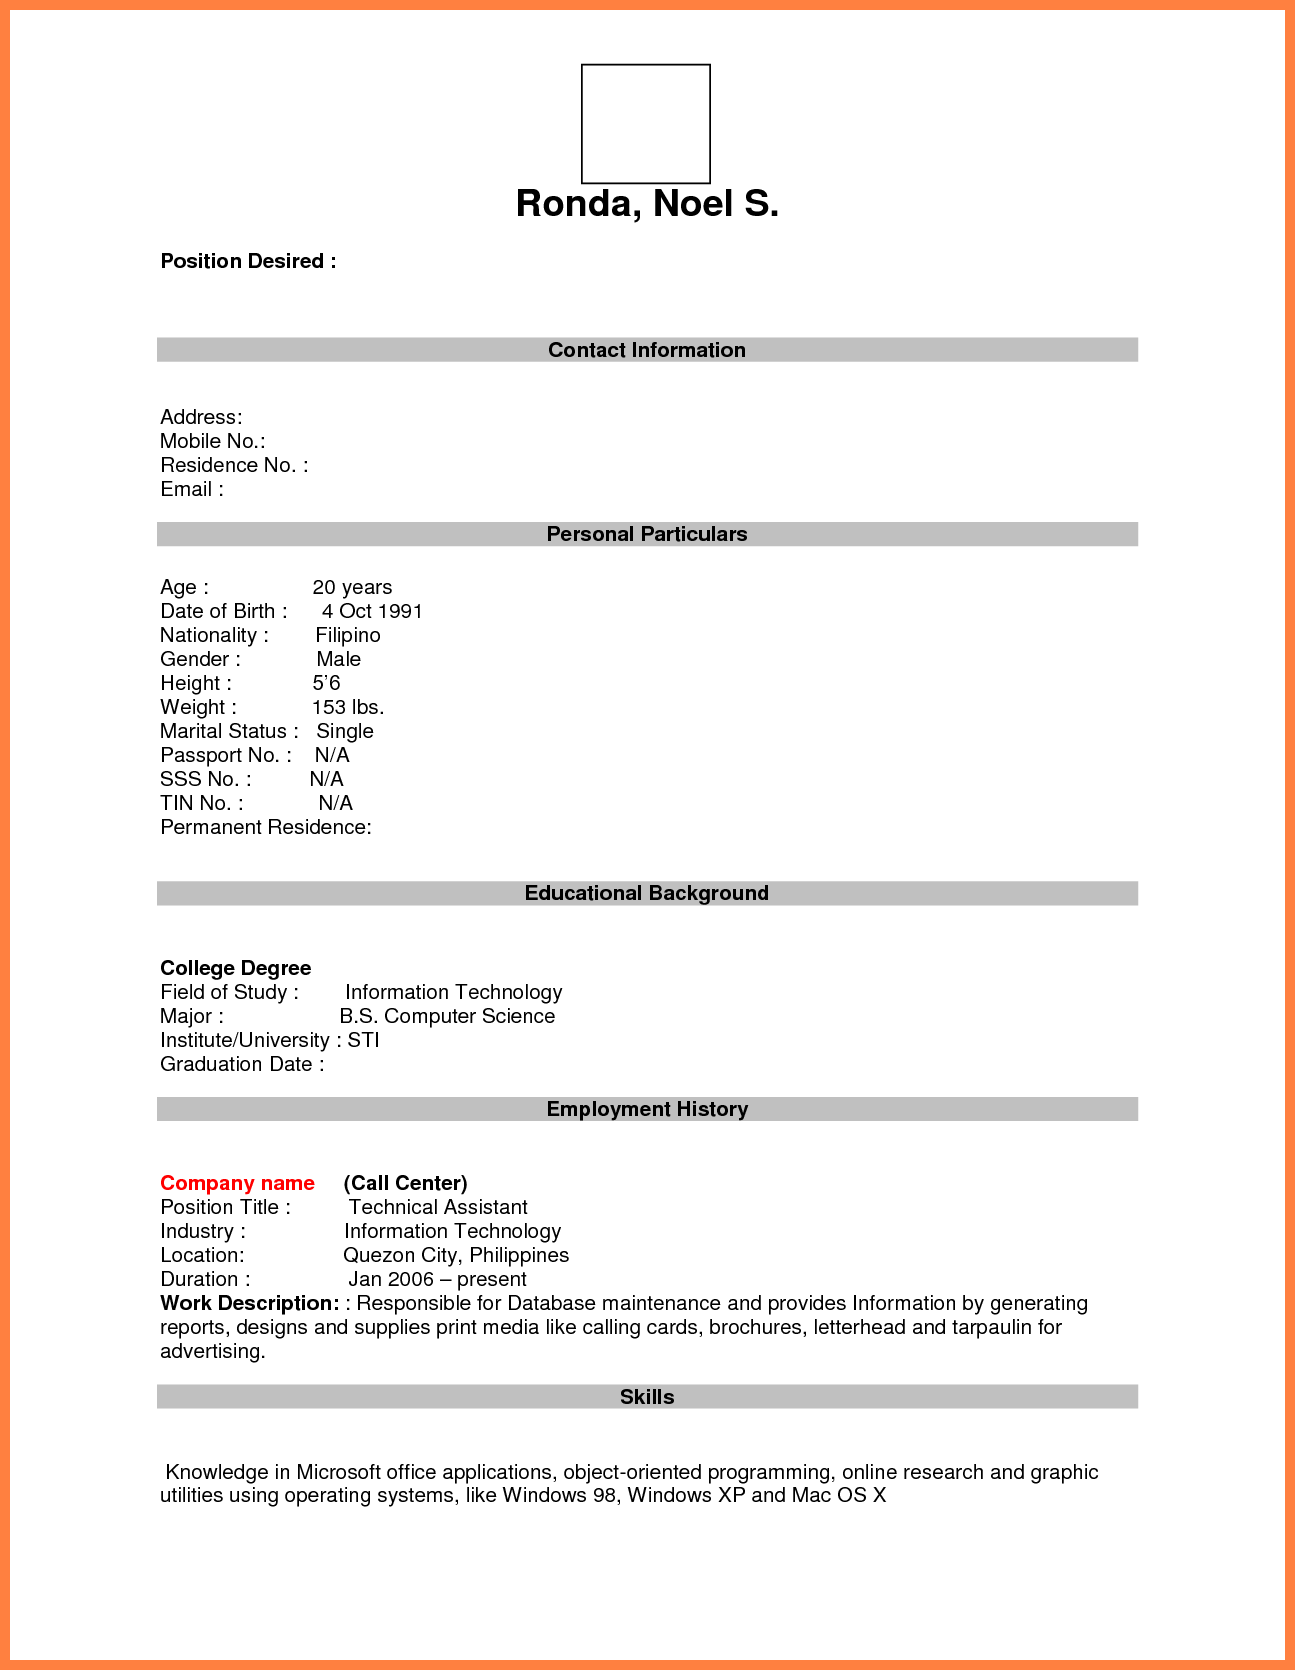 format for job application pdf basic appication letter blank resume form bussines proposal first time free templates